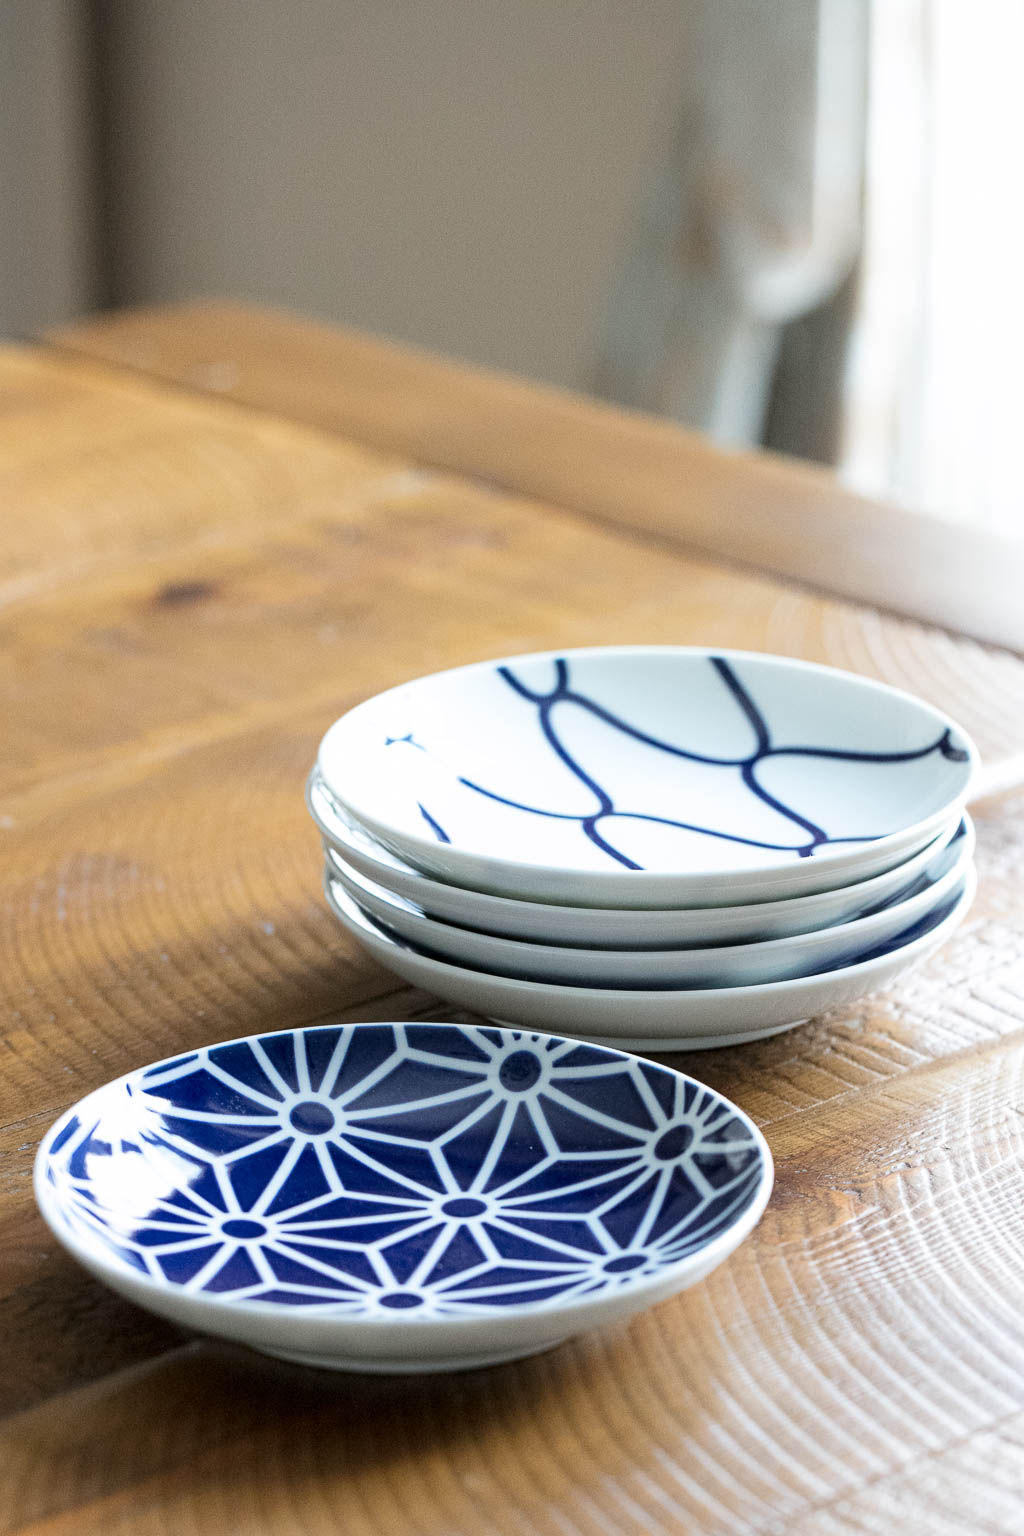 Kihara Porcelain Komon - Wave